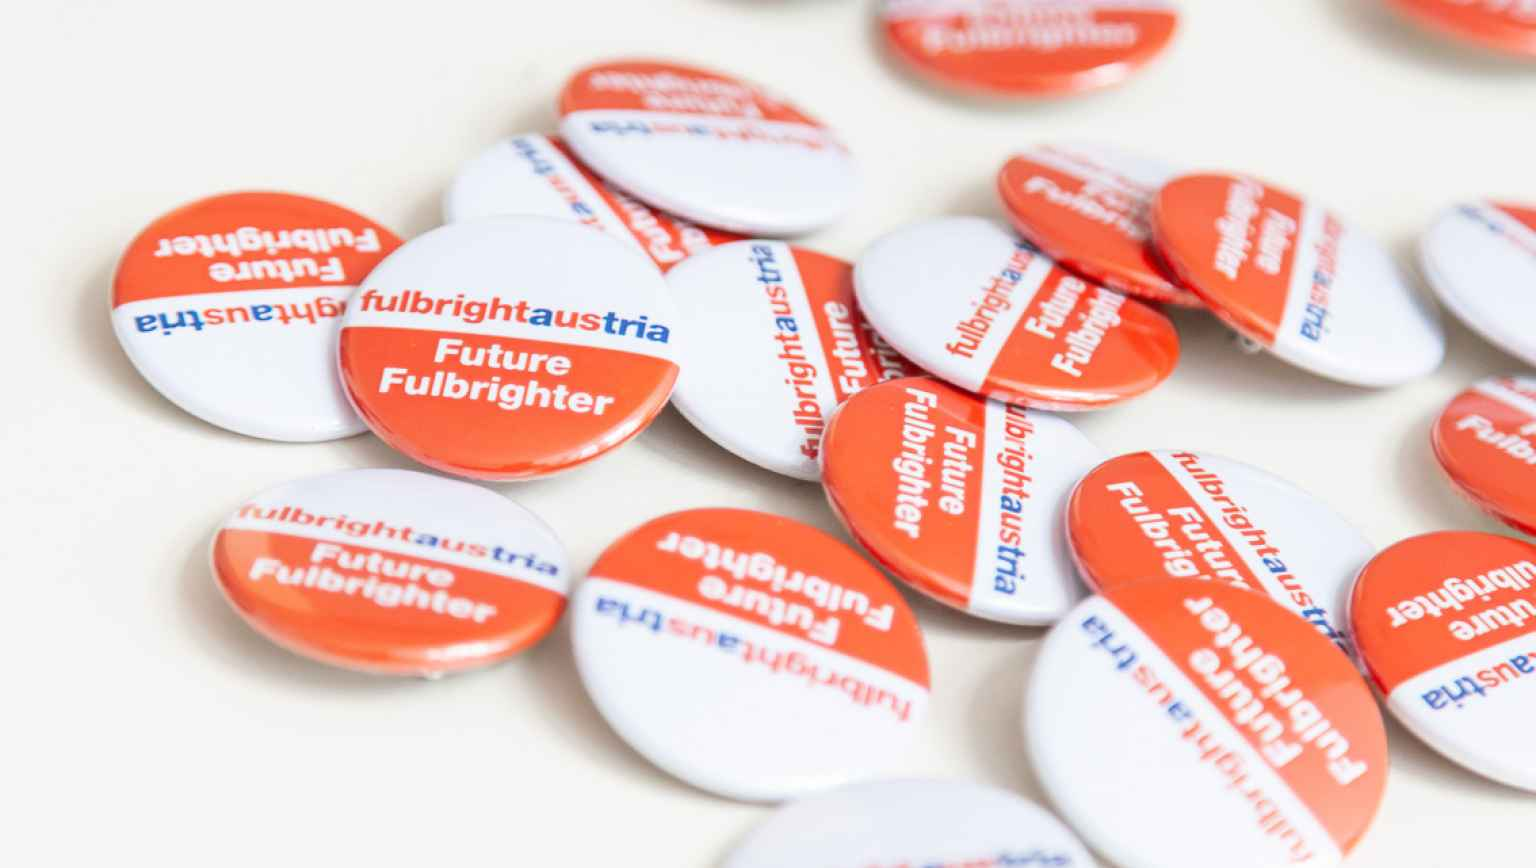 Fulbright Austria pins